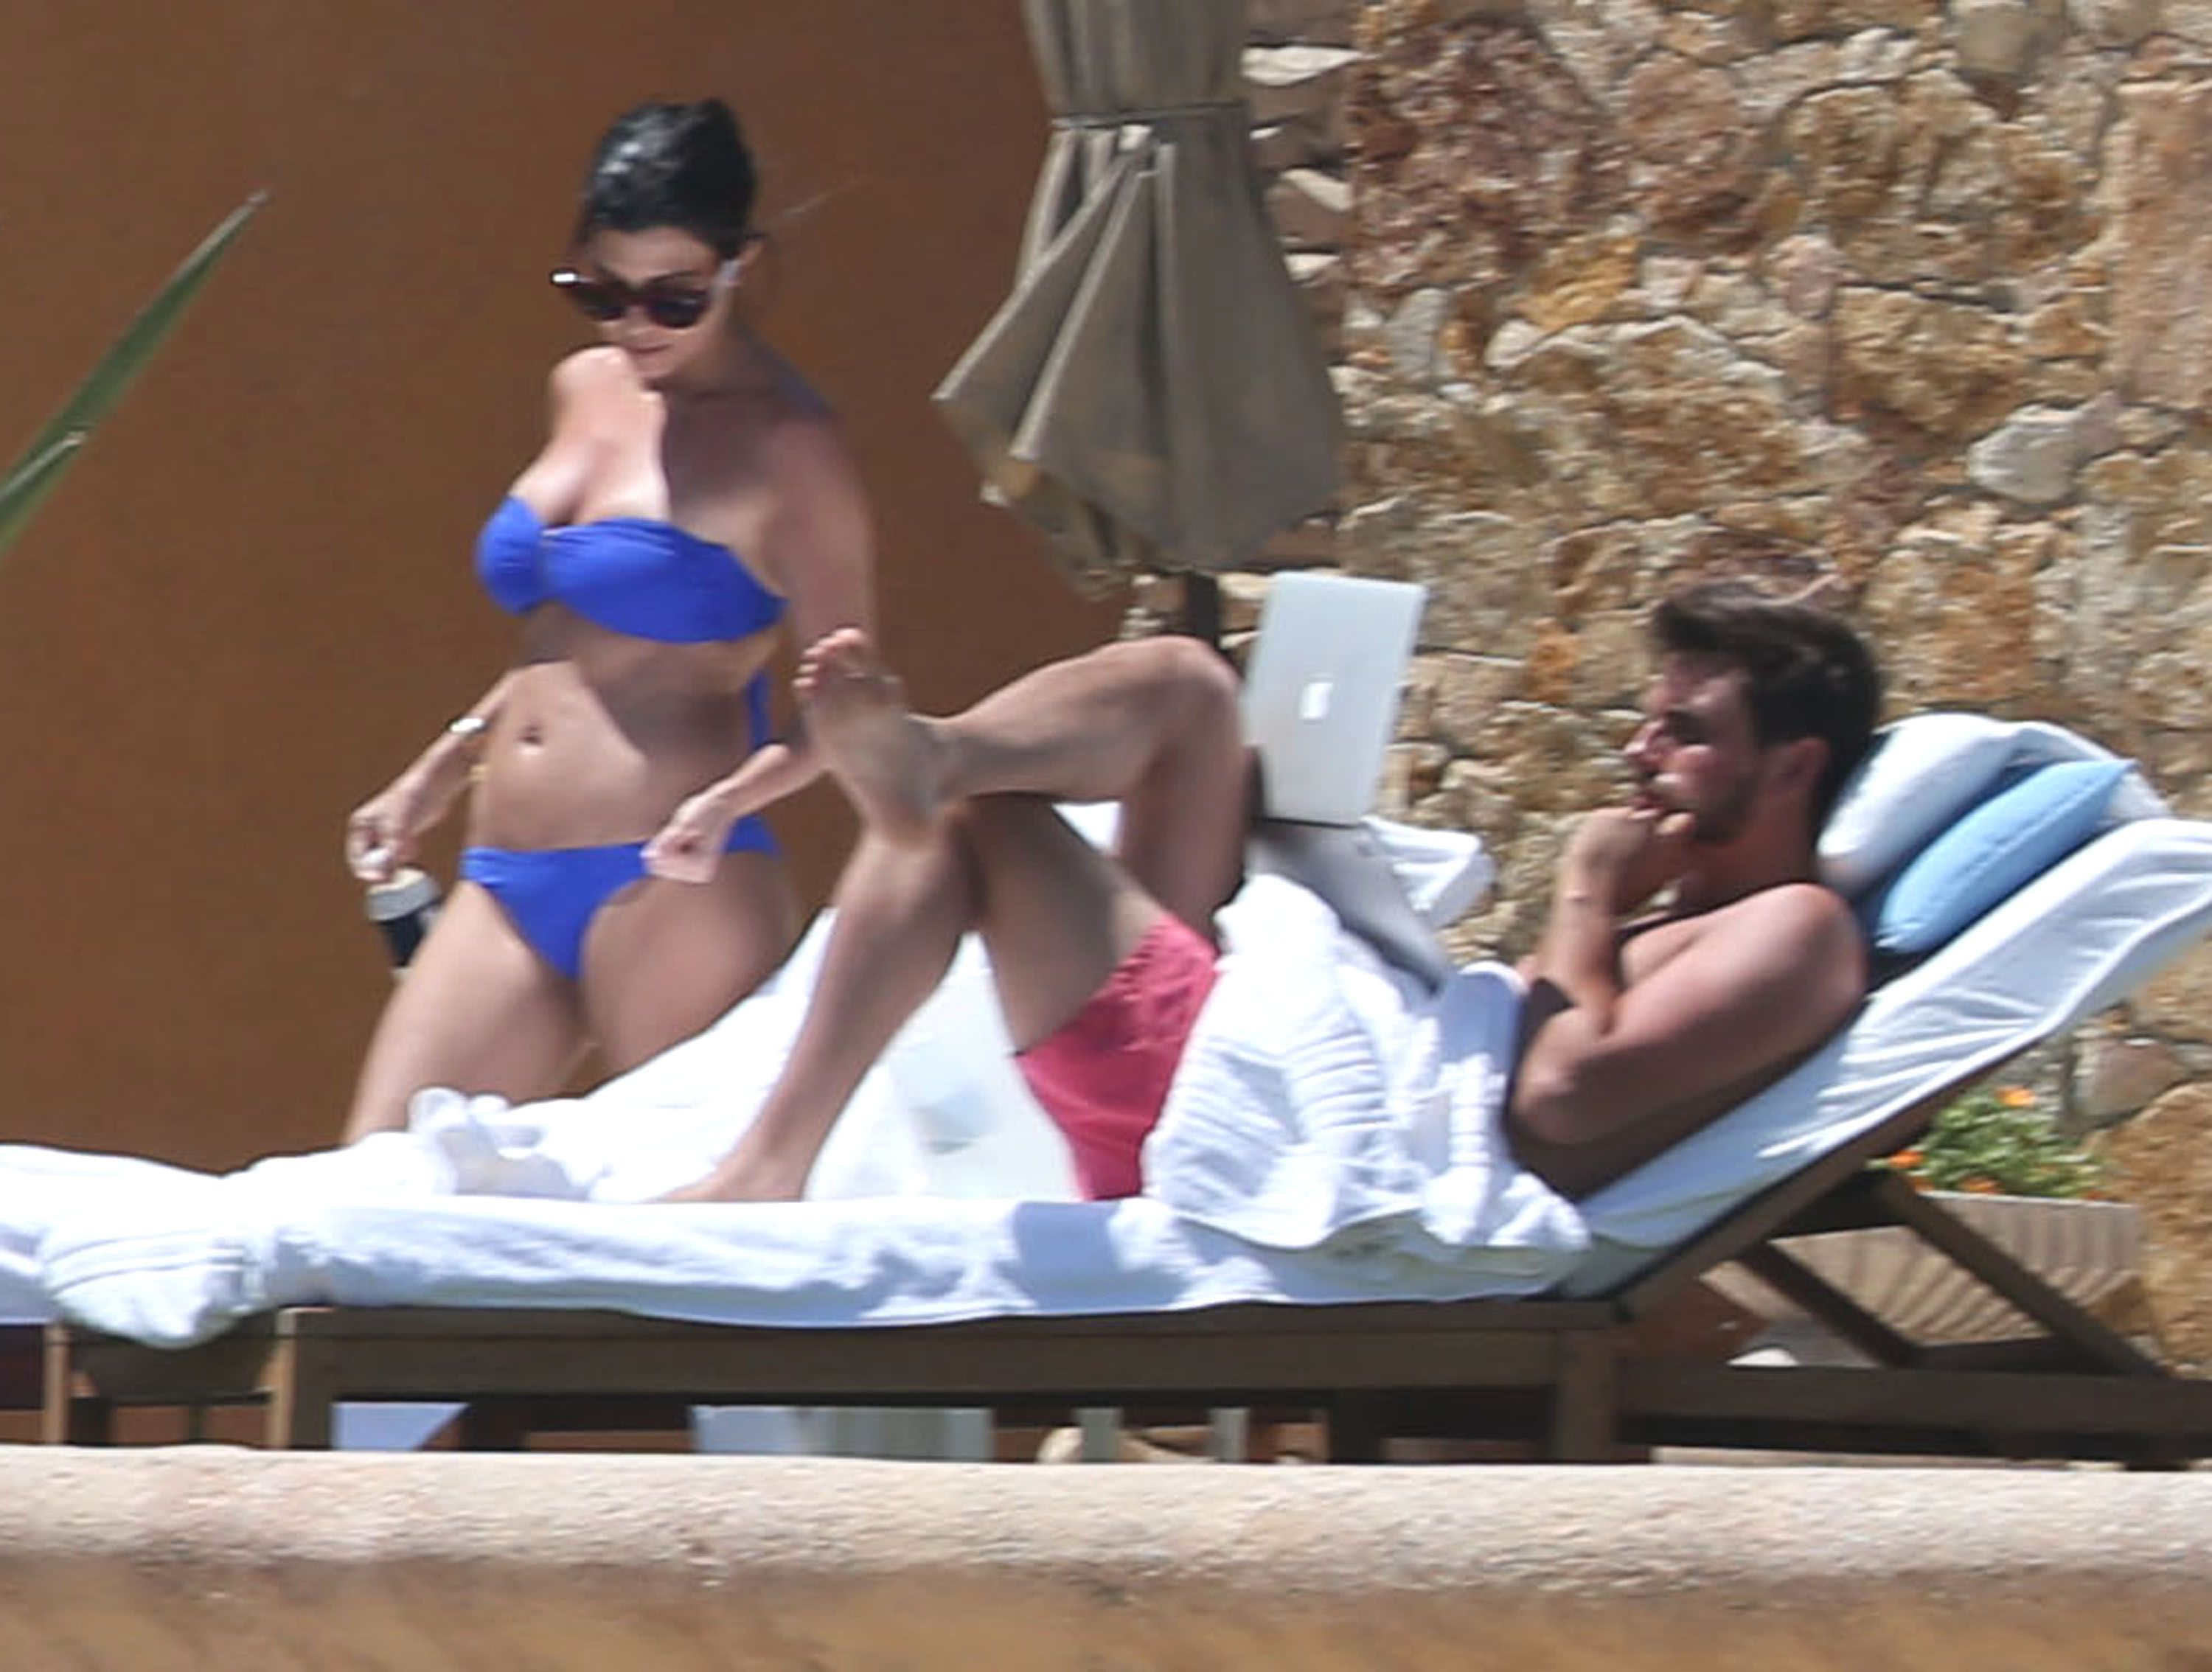 Kourtney Kardashian Celebrates 35th Birthday With Surprise Trip To Mexico Bikini Pictures